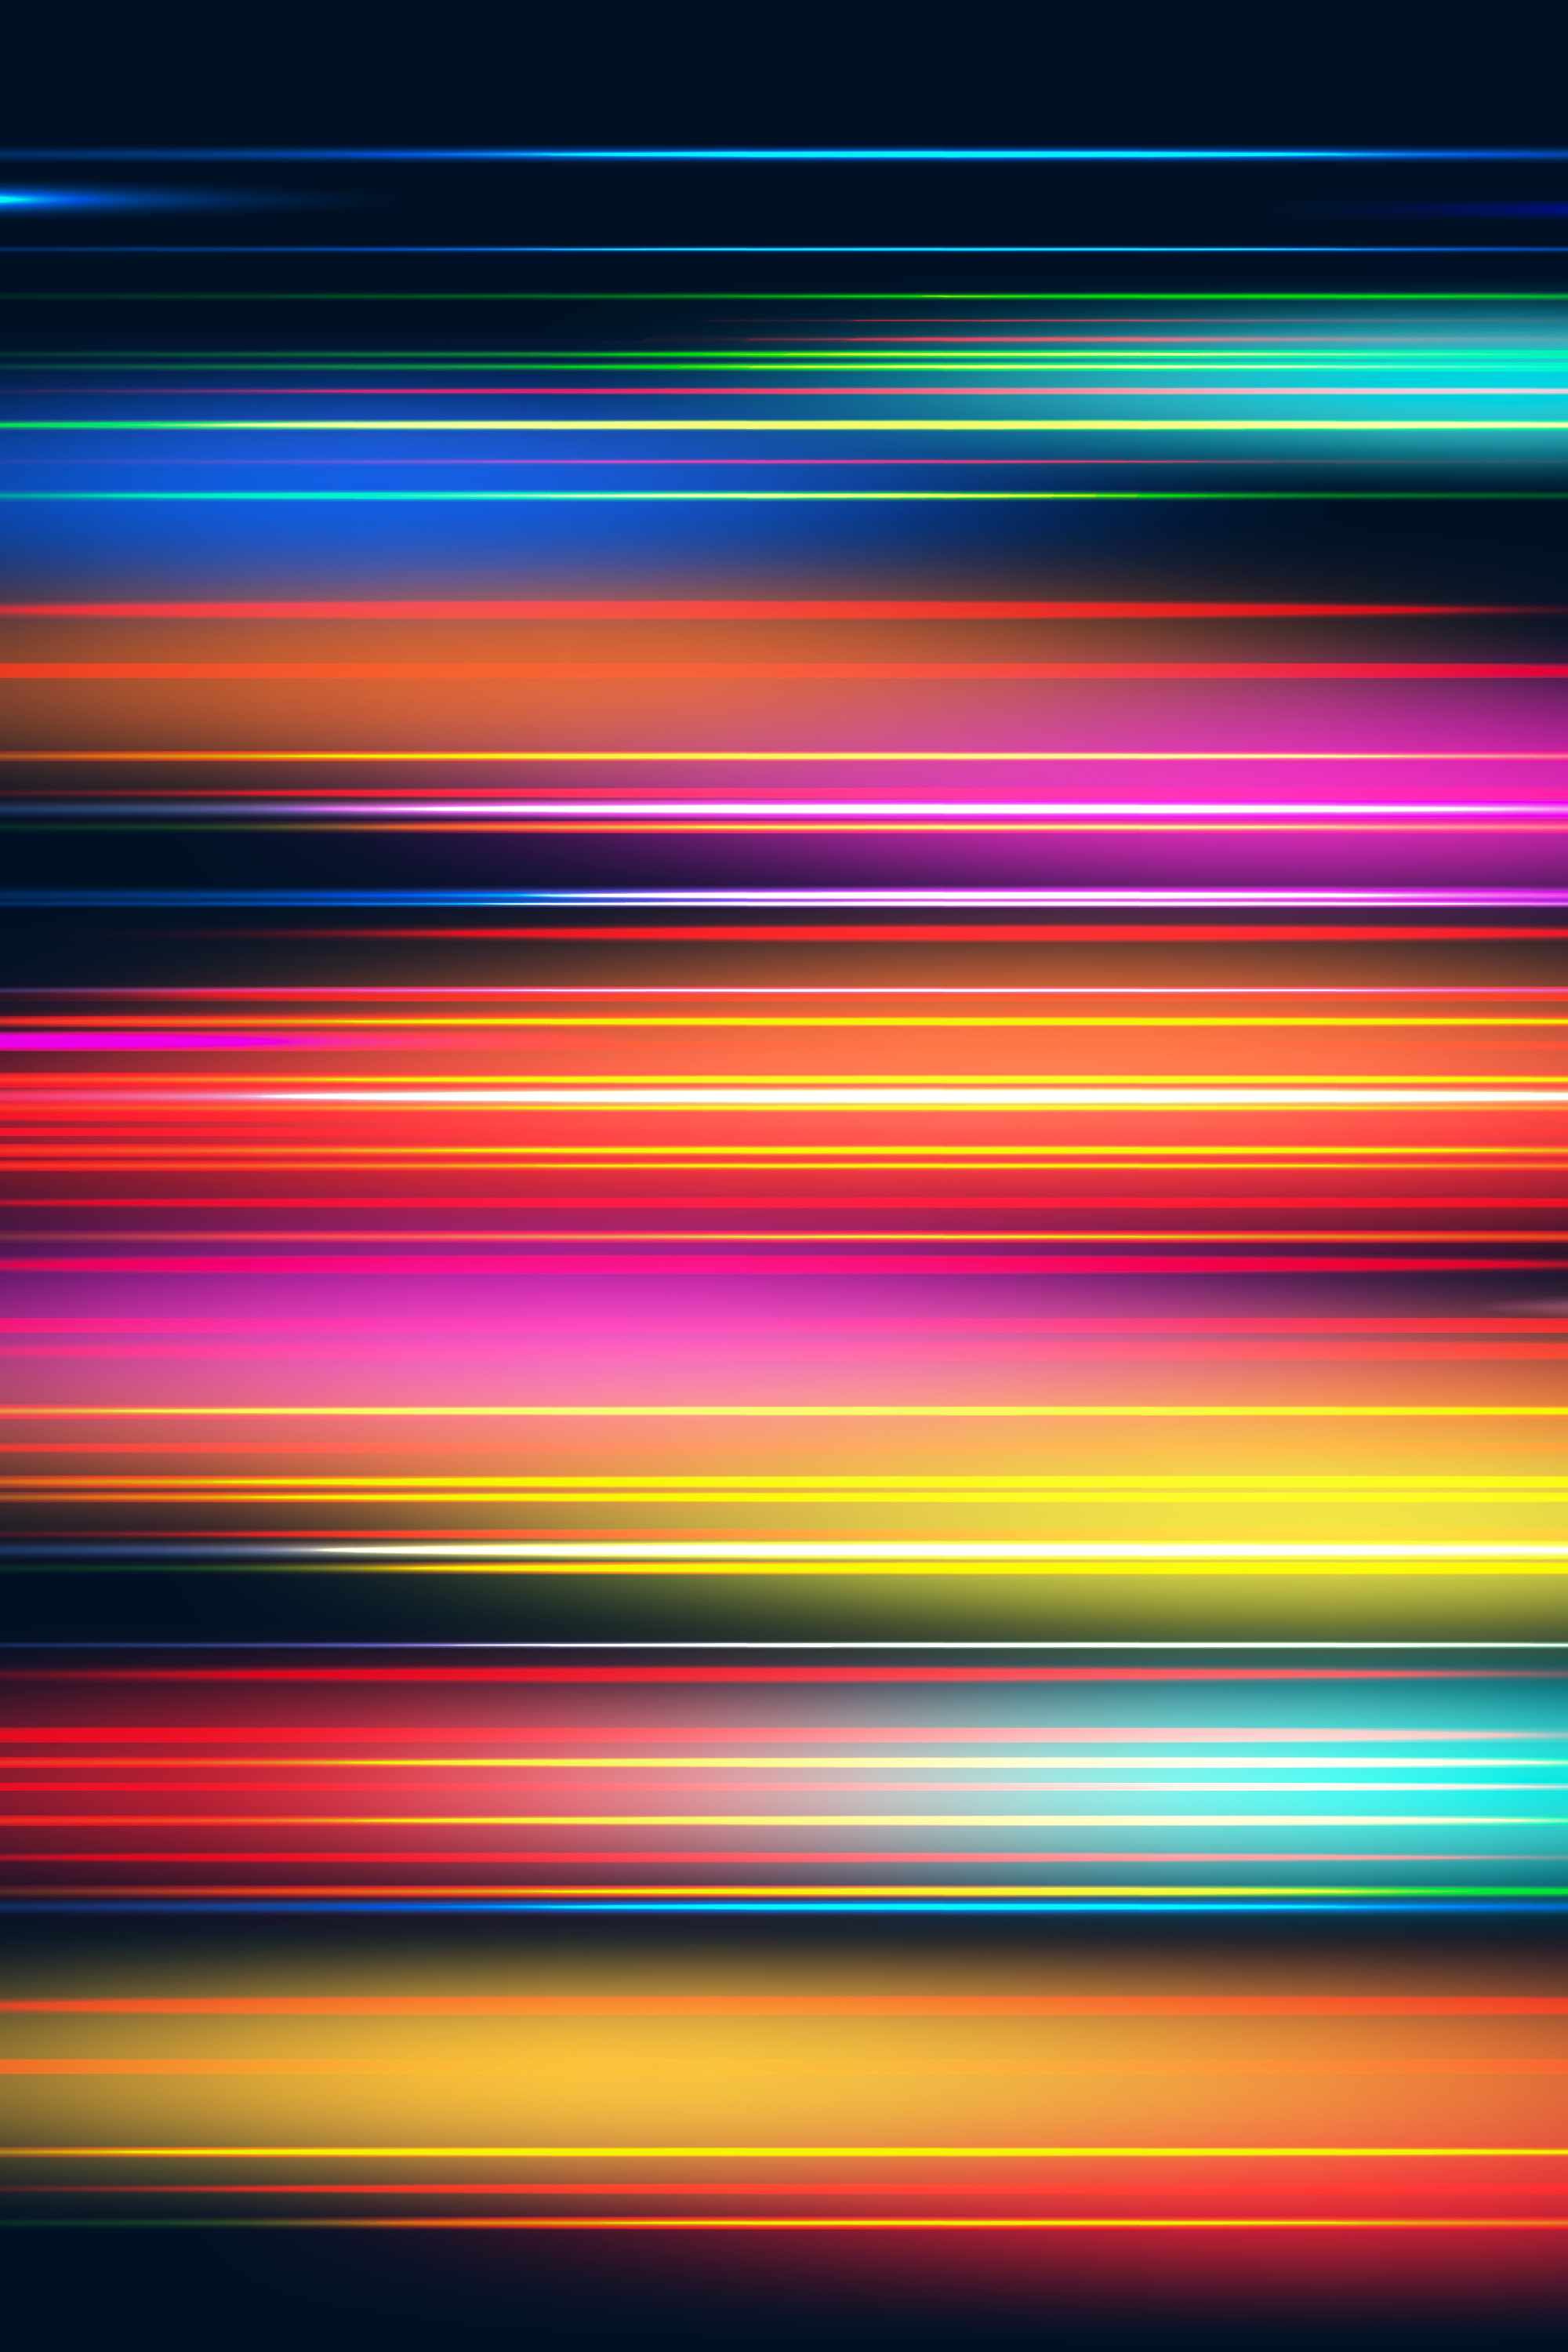 Abstract rainbow wallpaper iphone EvgeniyZemelko